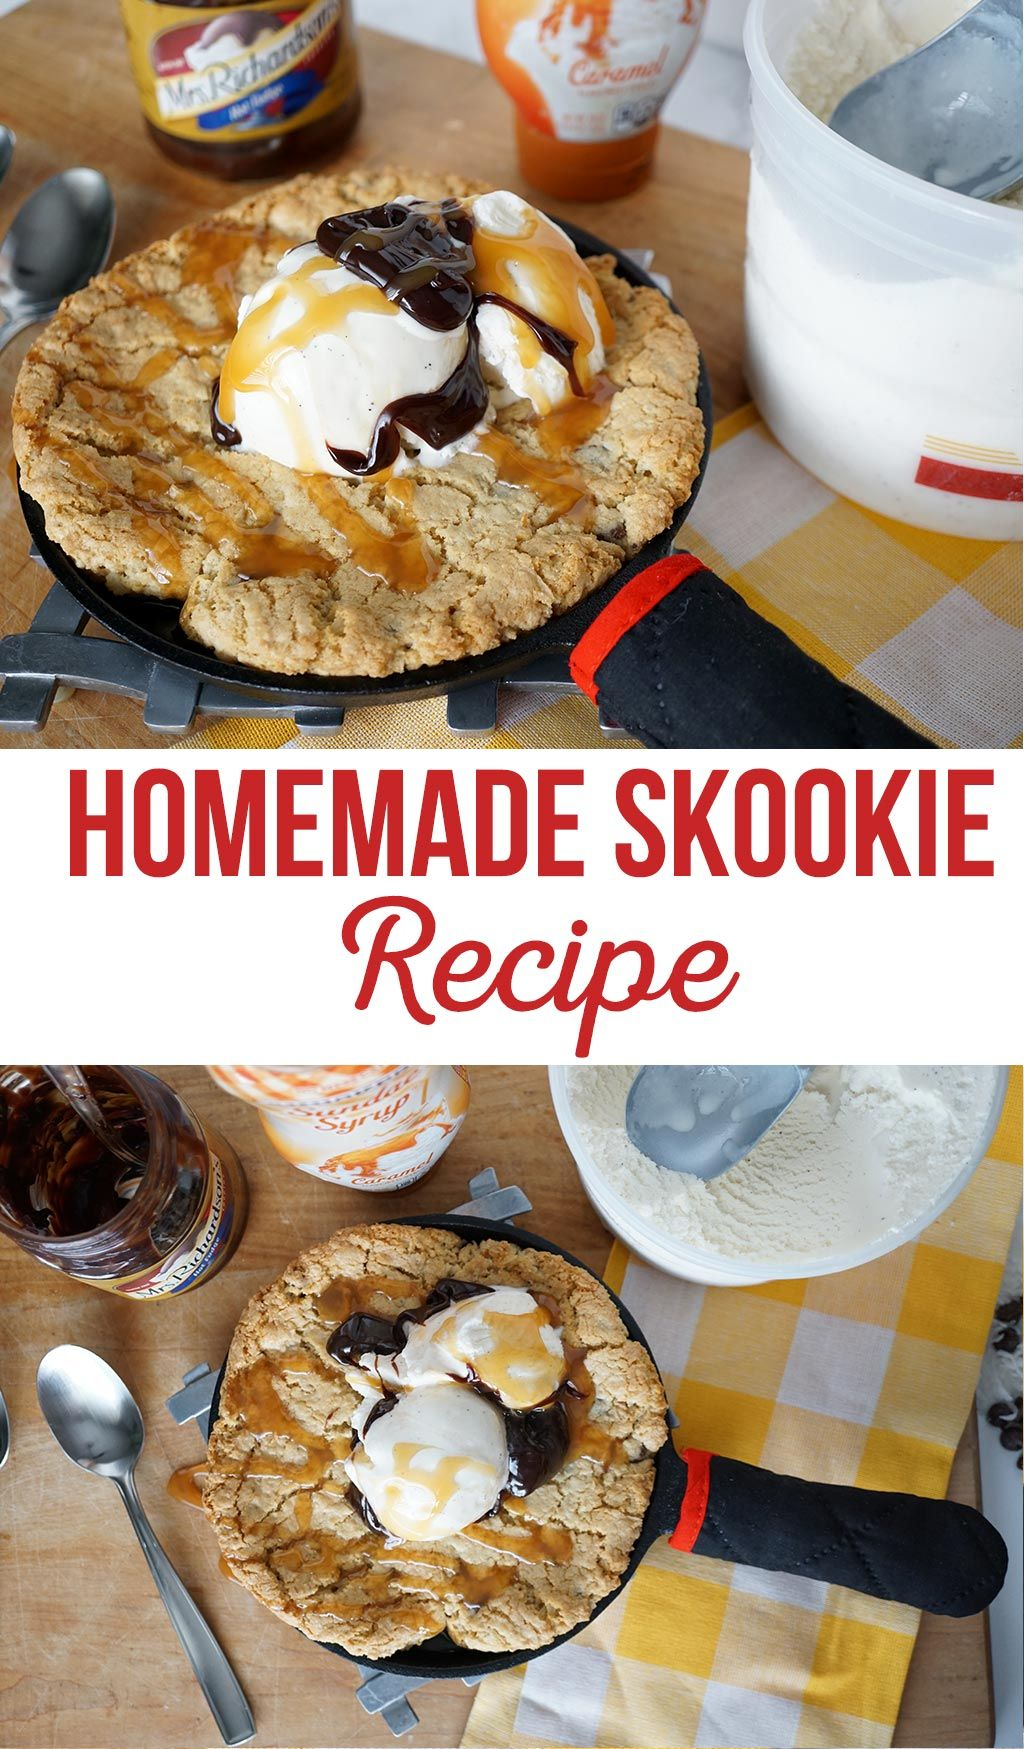 The BEST Homemade Skookie Recipe   Skookies = skillet + cookies   Whatever you want to call this dessert of deliciousness... these are amazing!